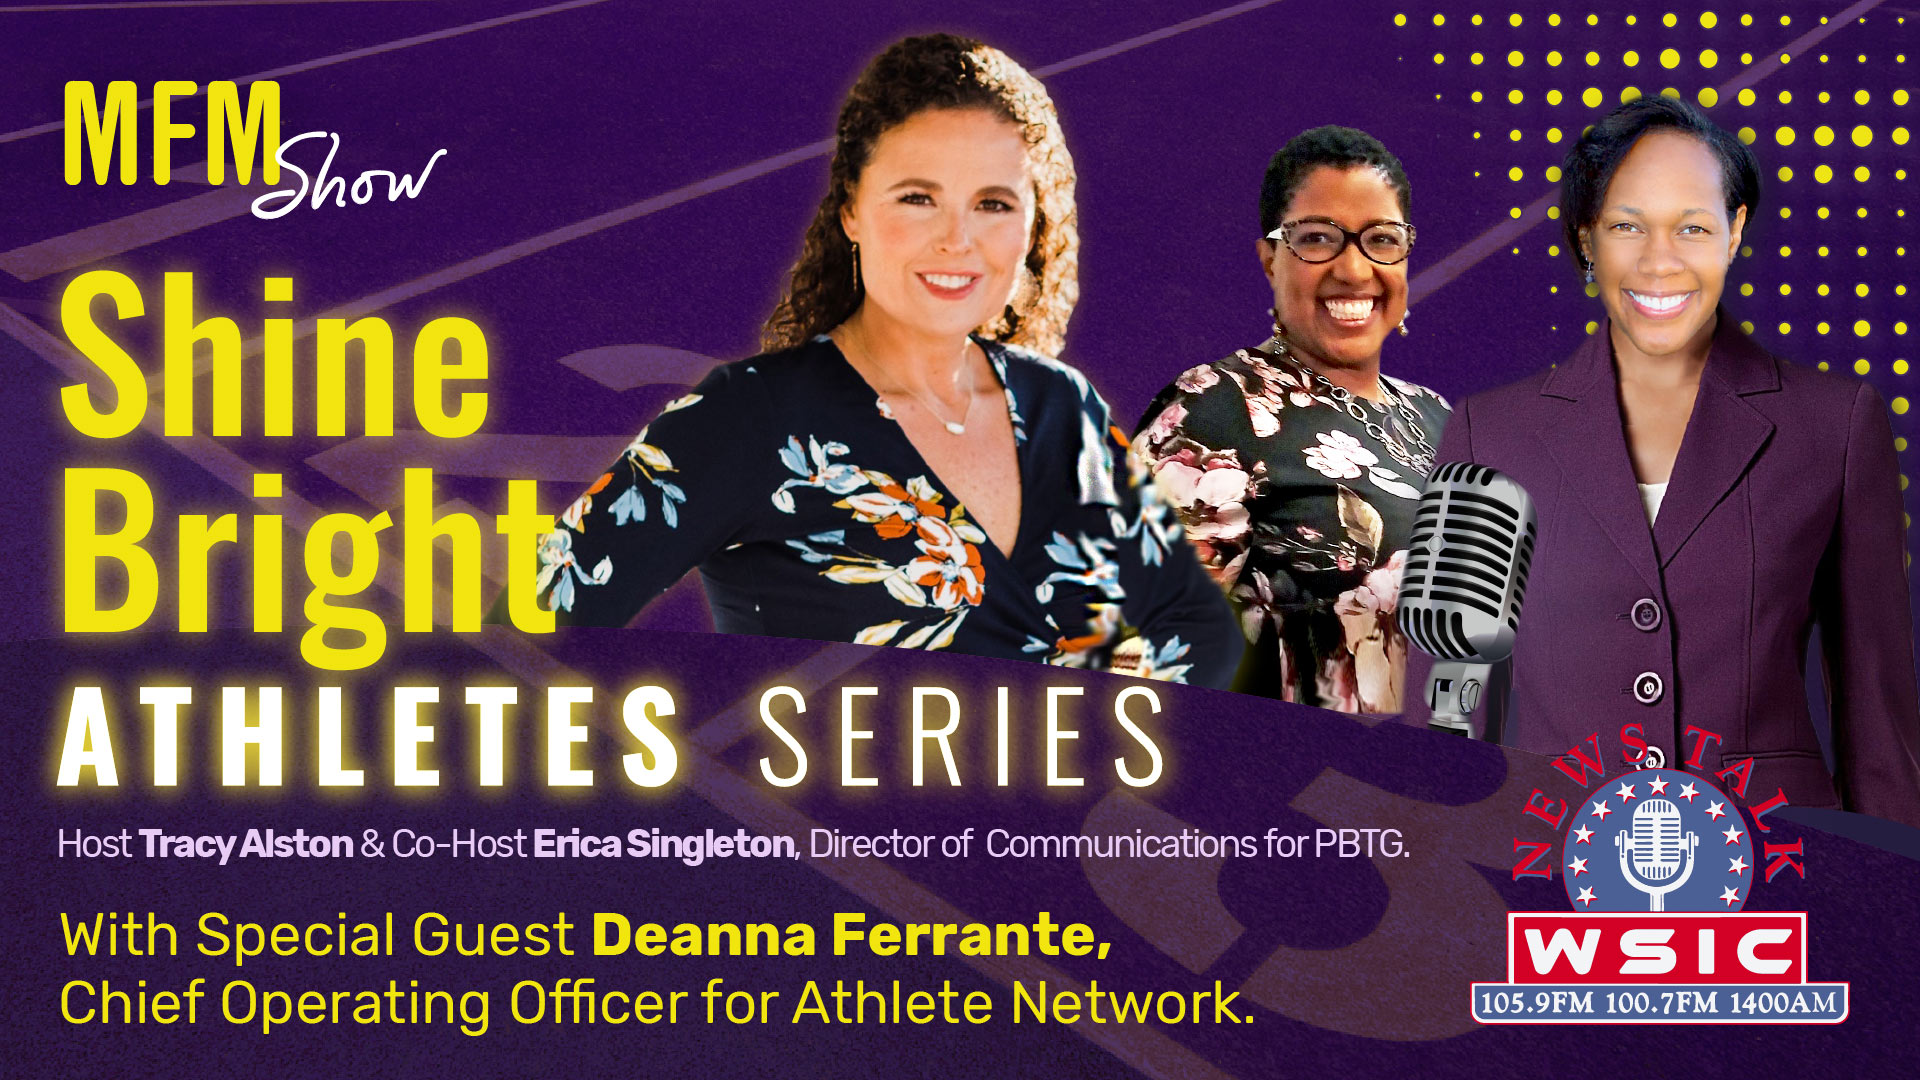 Keeping Athletes Connected Through Networking And Community | SHINE BRIGHT ATHLETE SERIES